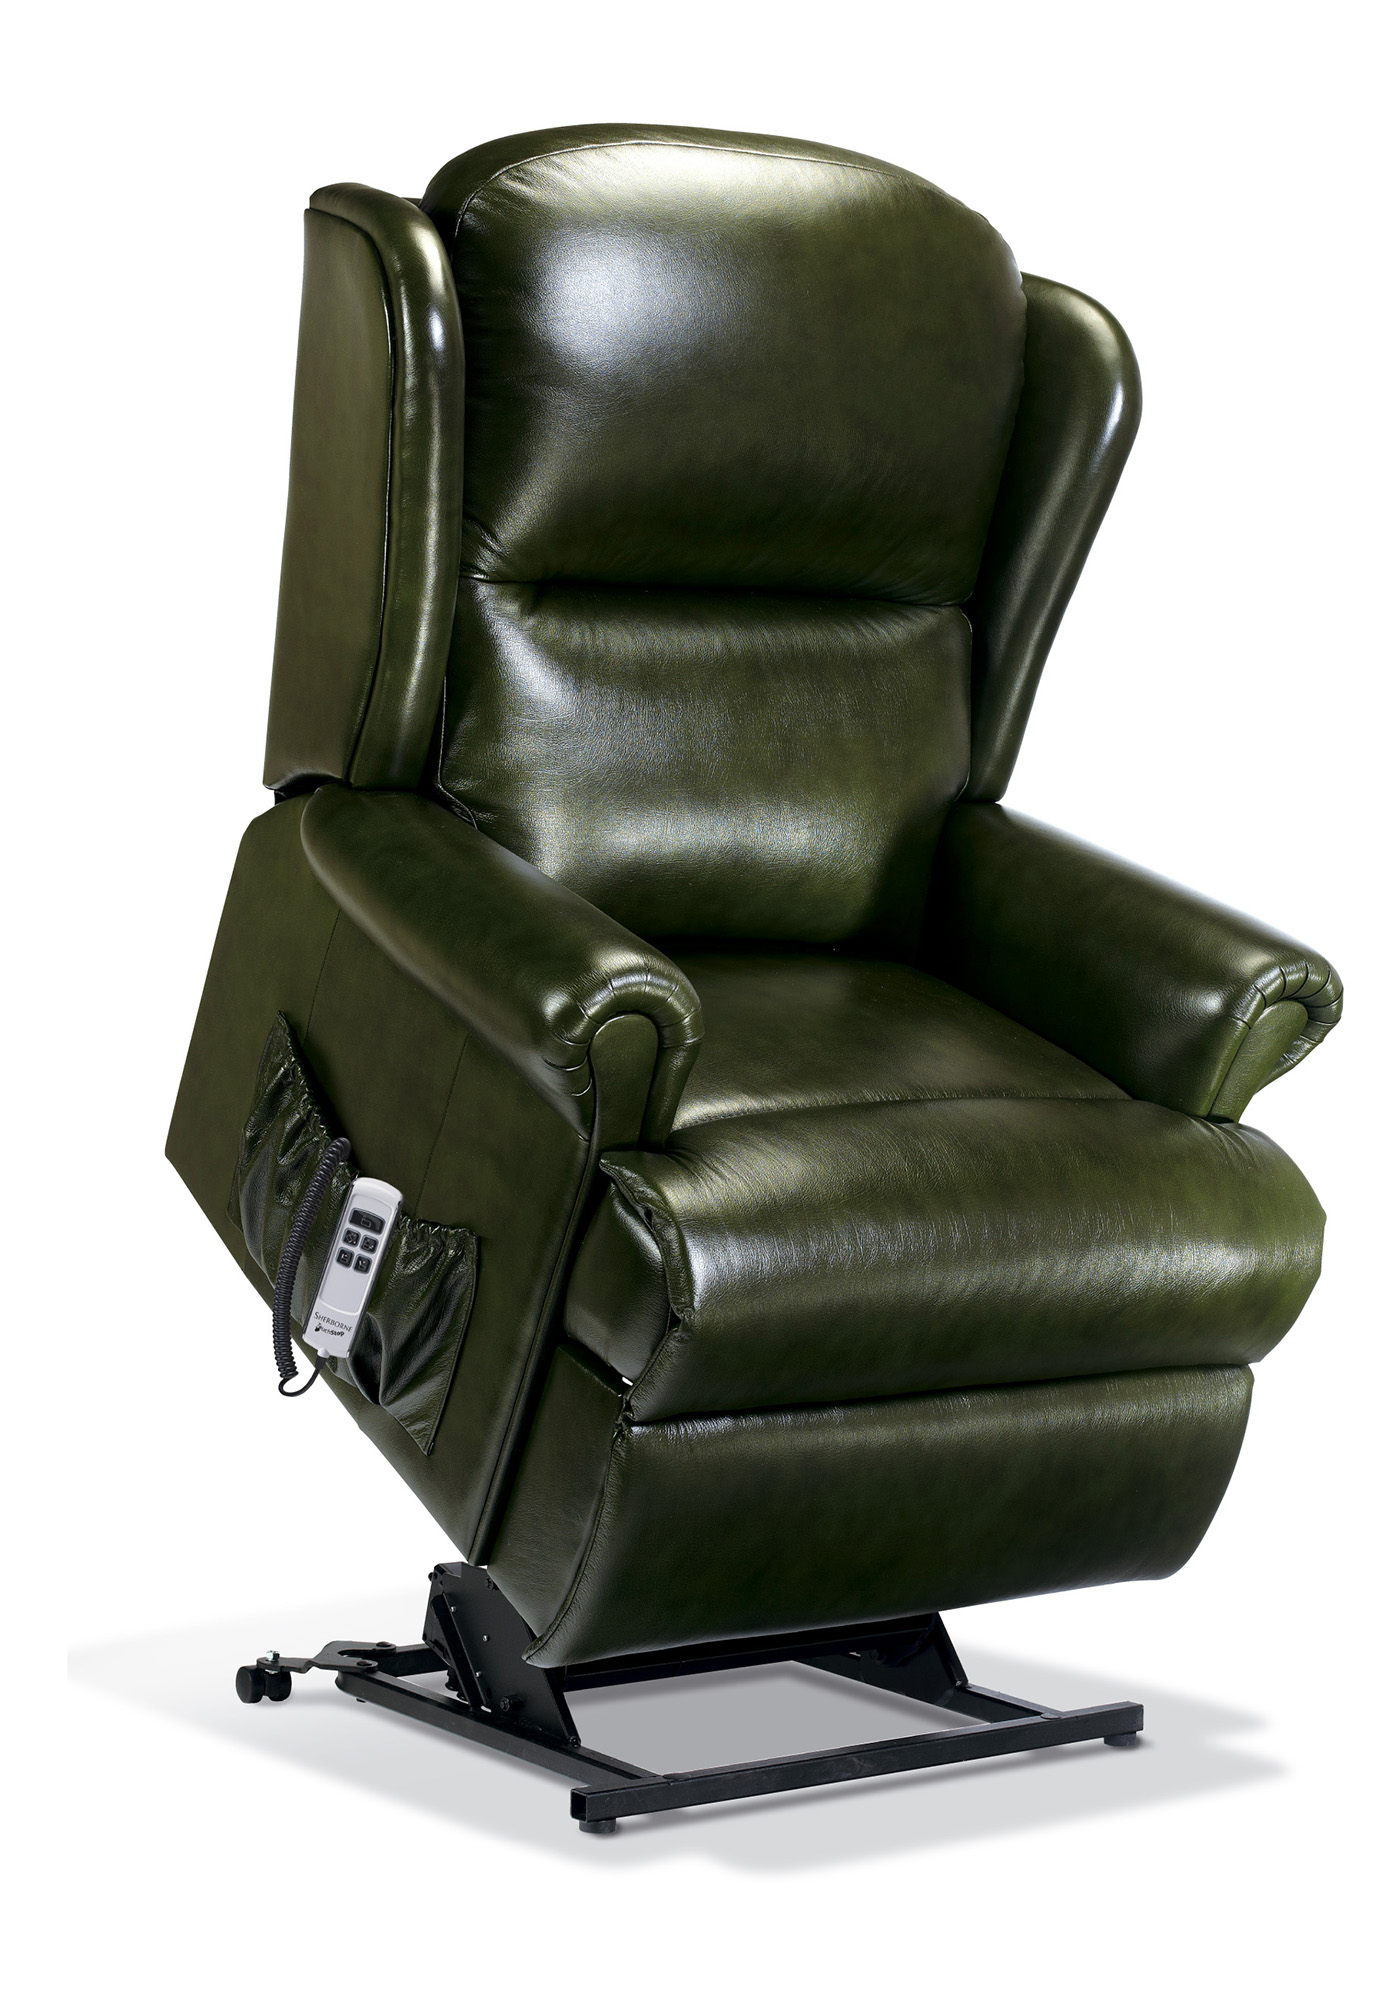 electric recliner sofa chair motor best vacuum cleaner to clean sofas malvern royale leather riser sherborne